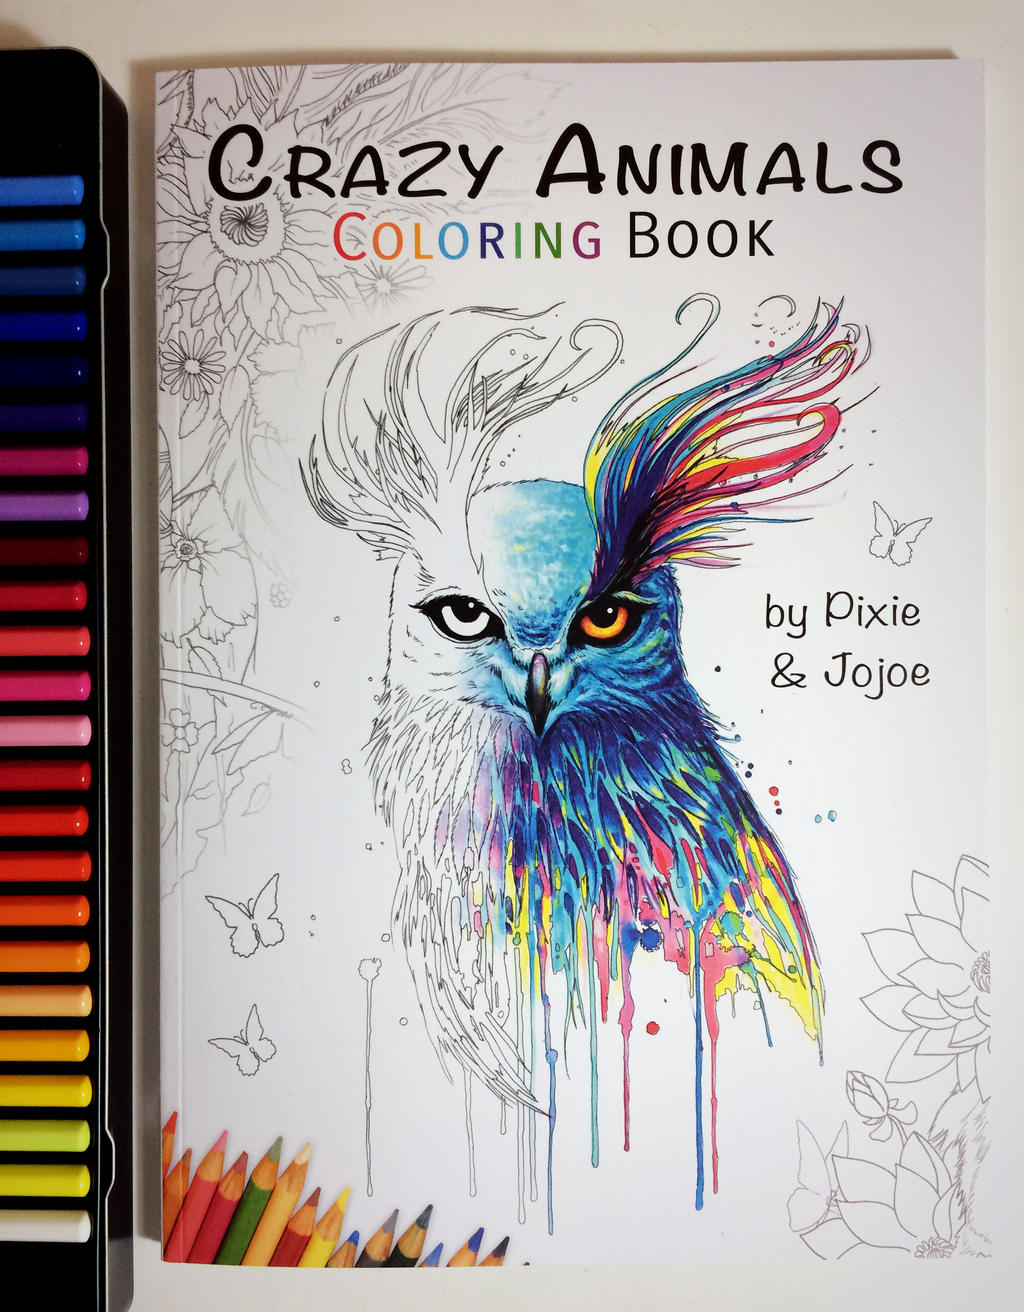 Crazy animals coloring book by jojoesart on deviantart Crazy animals coloring book